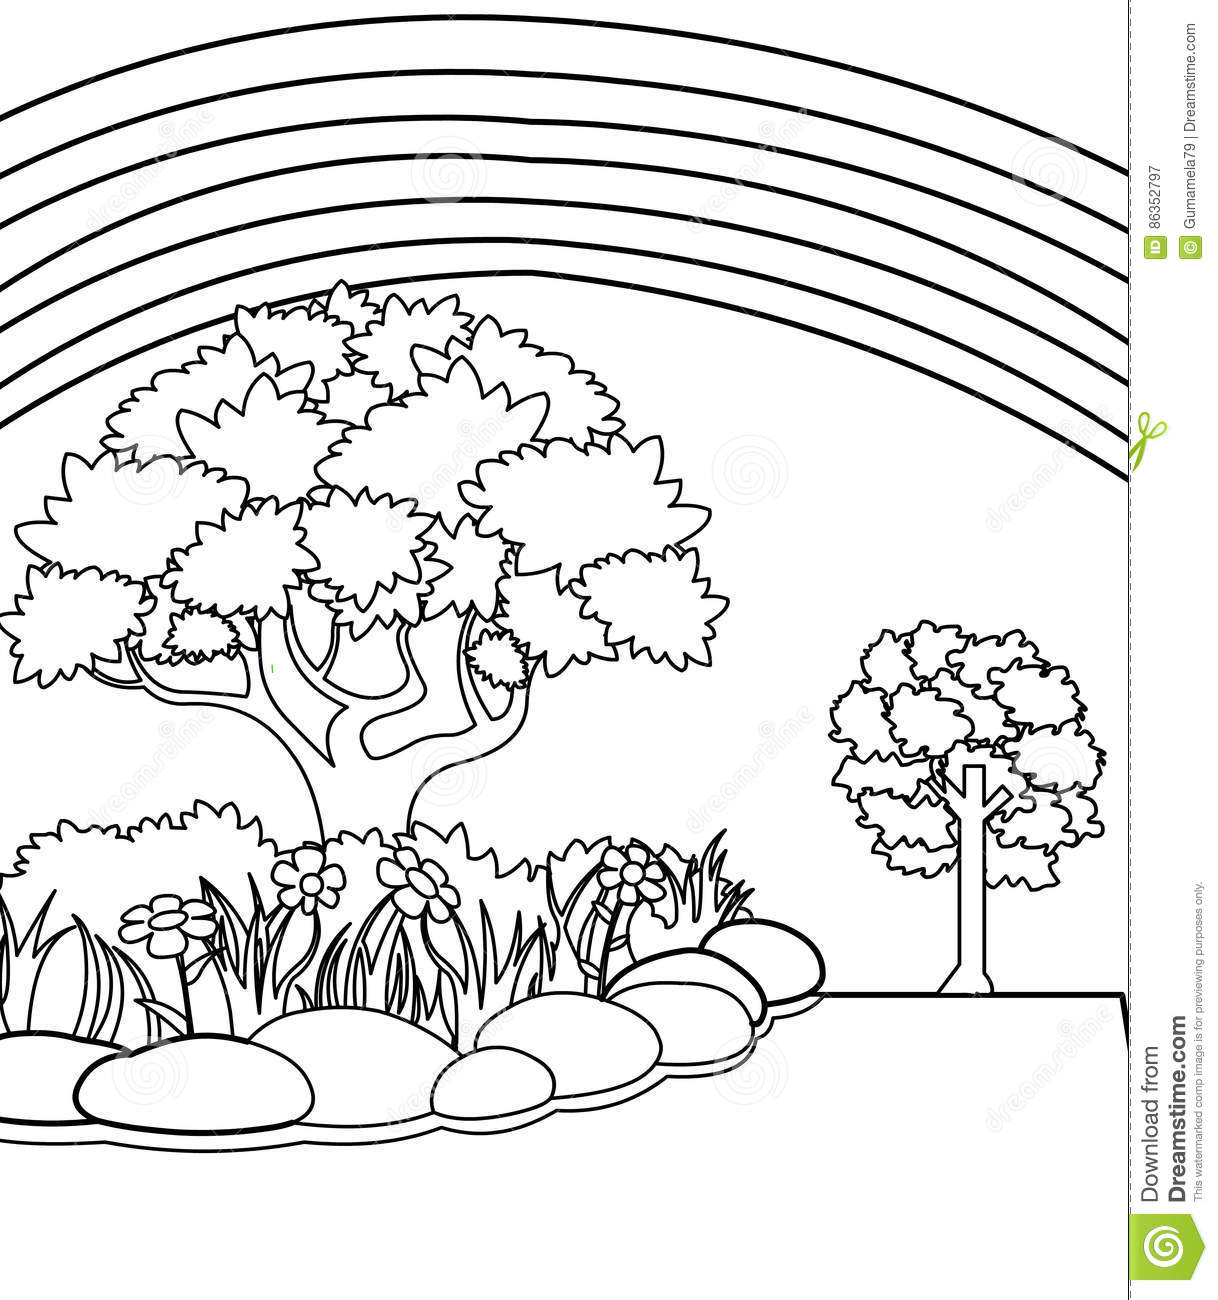 Coloring pages trees and flowers - Royalty Free Illustration Download Garden Coloring Page